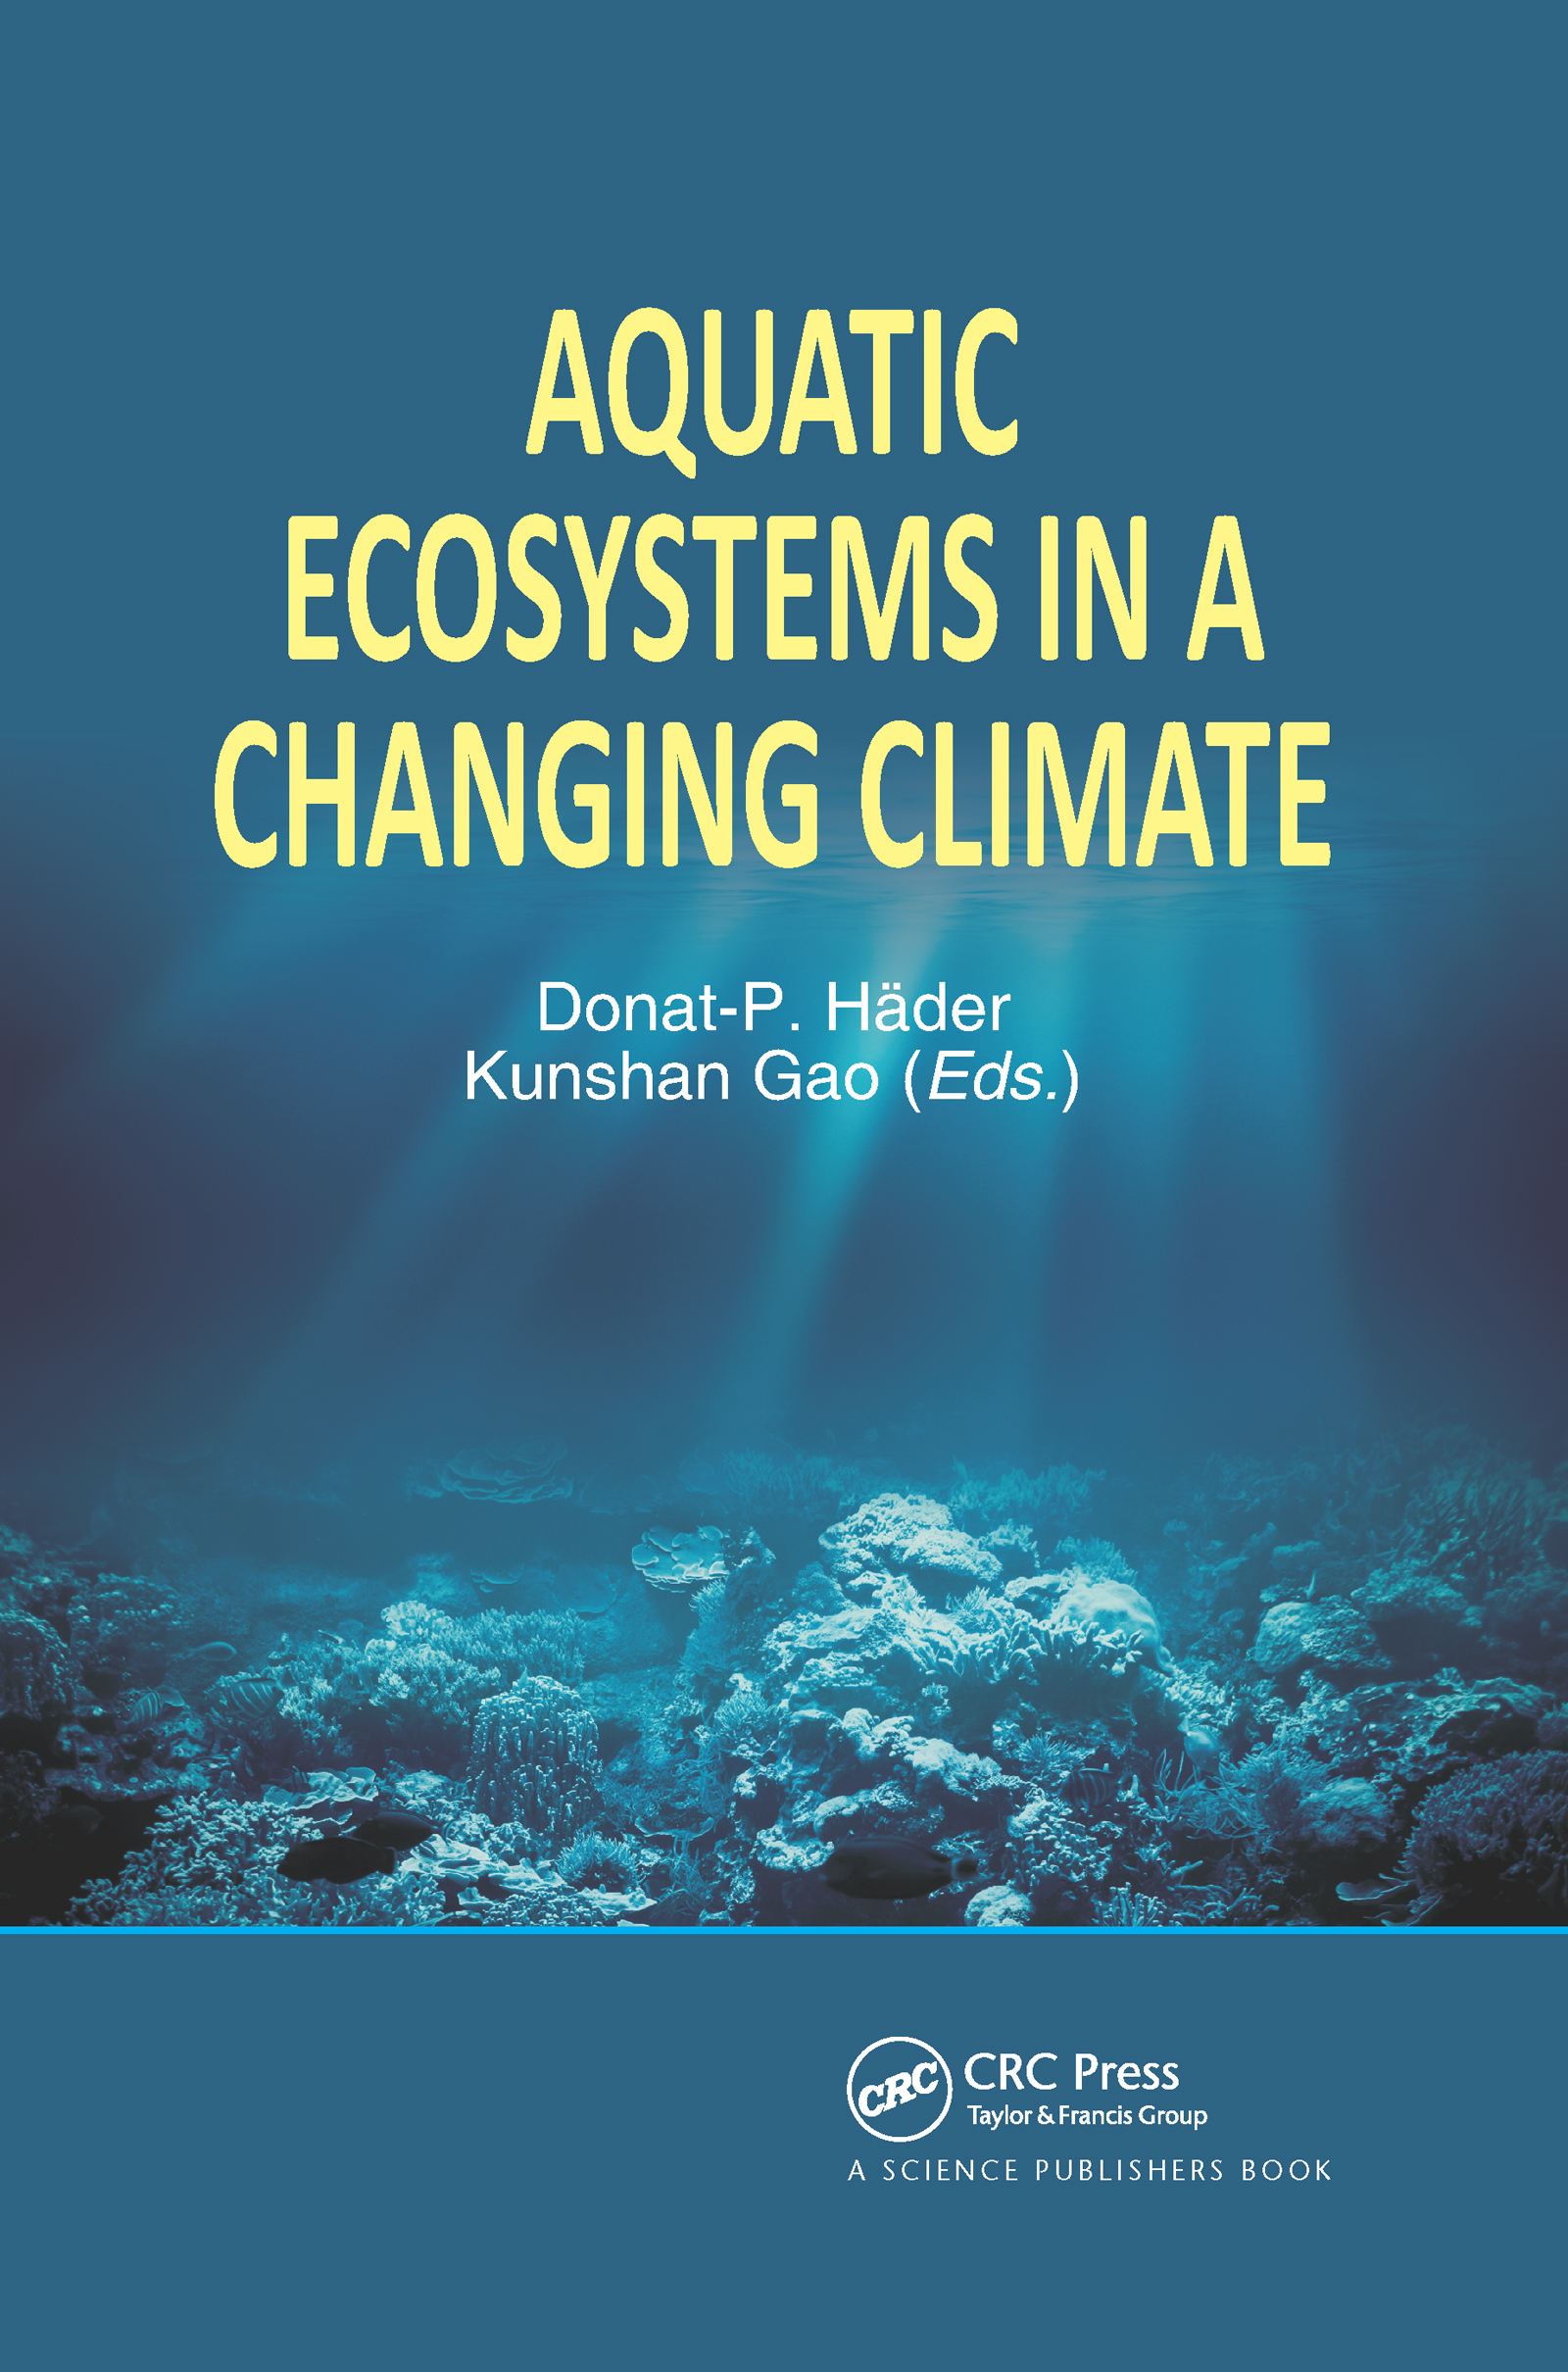 Aquatic Ecosystems in a Changing Climate